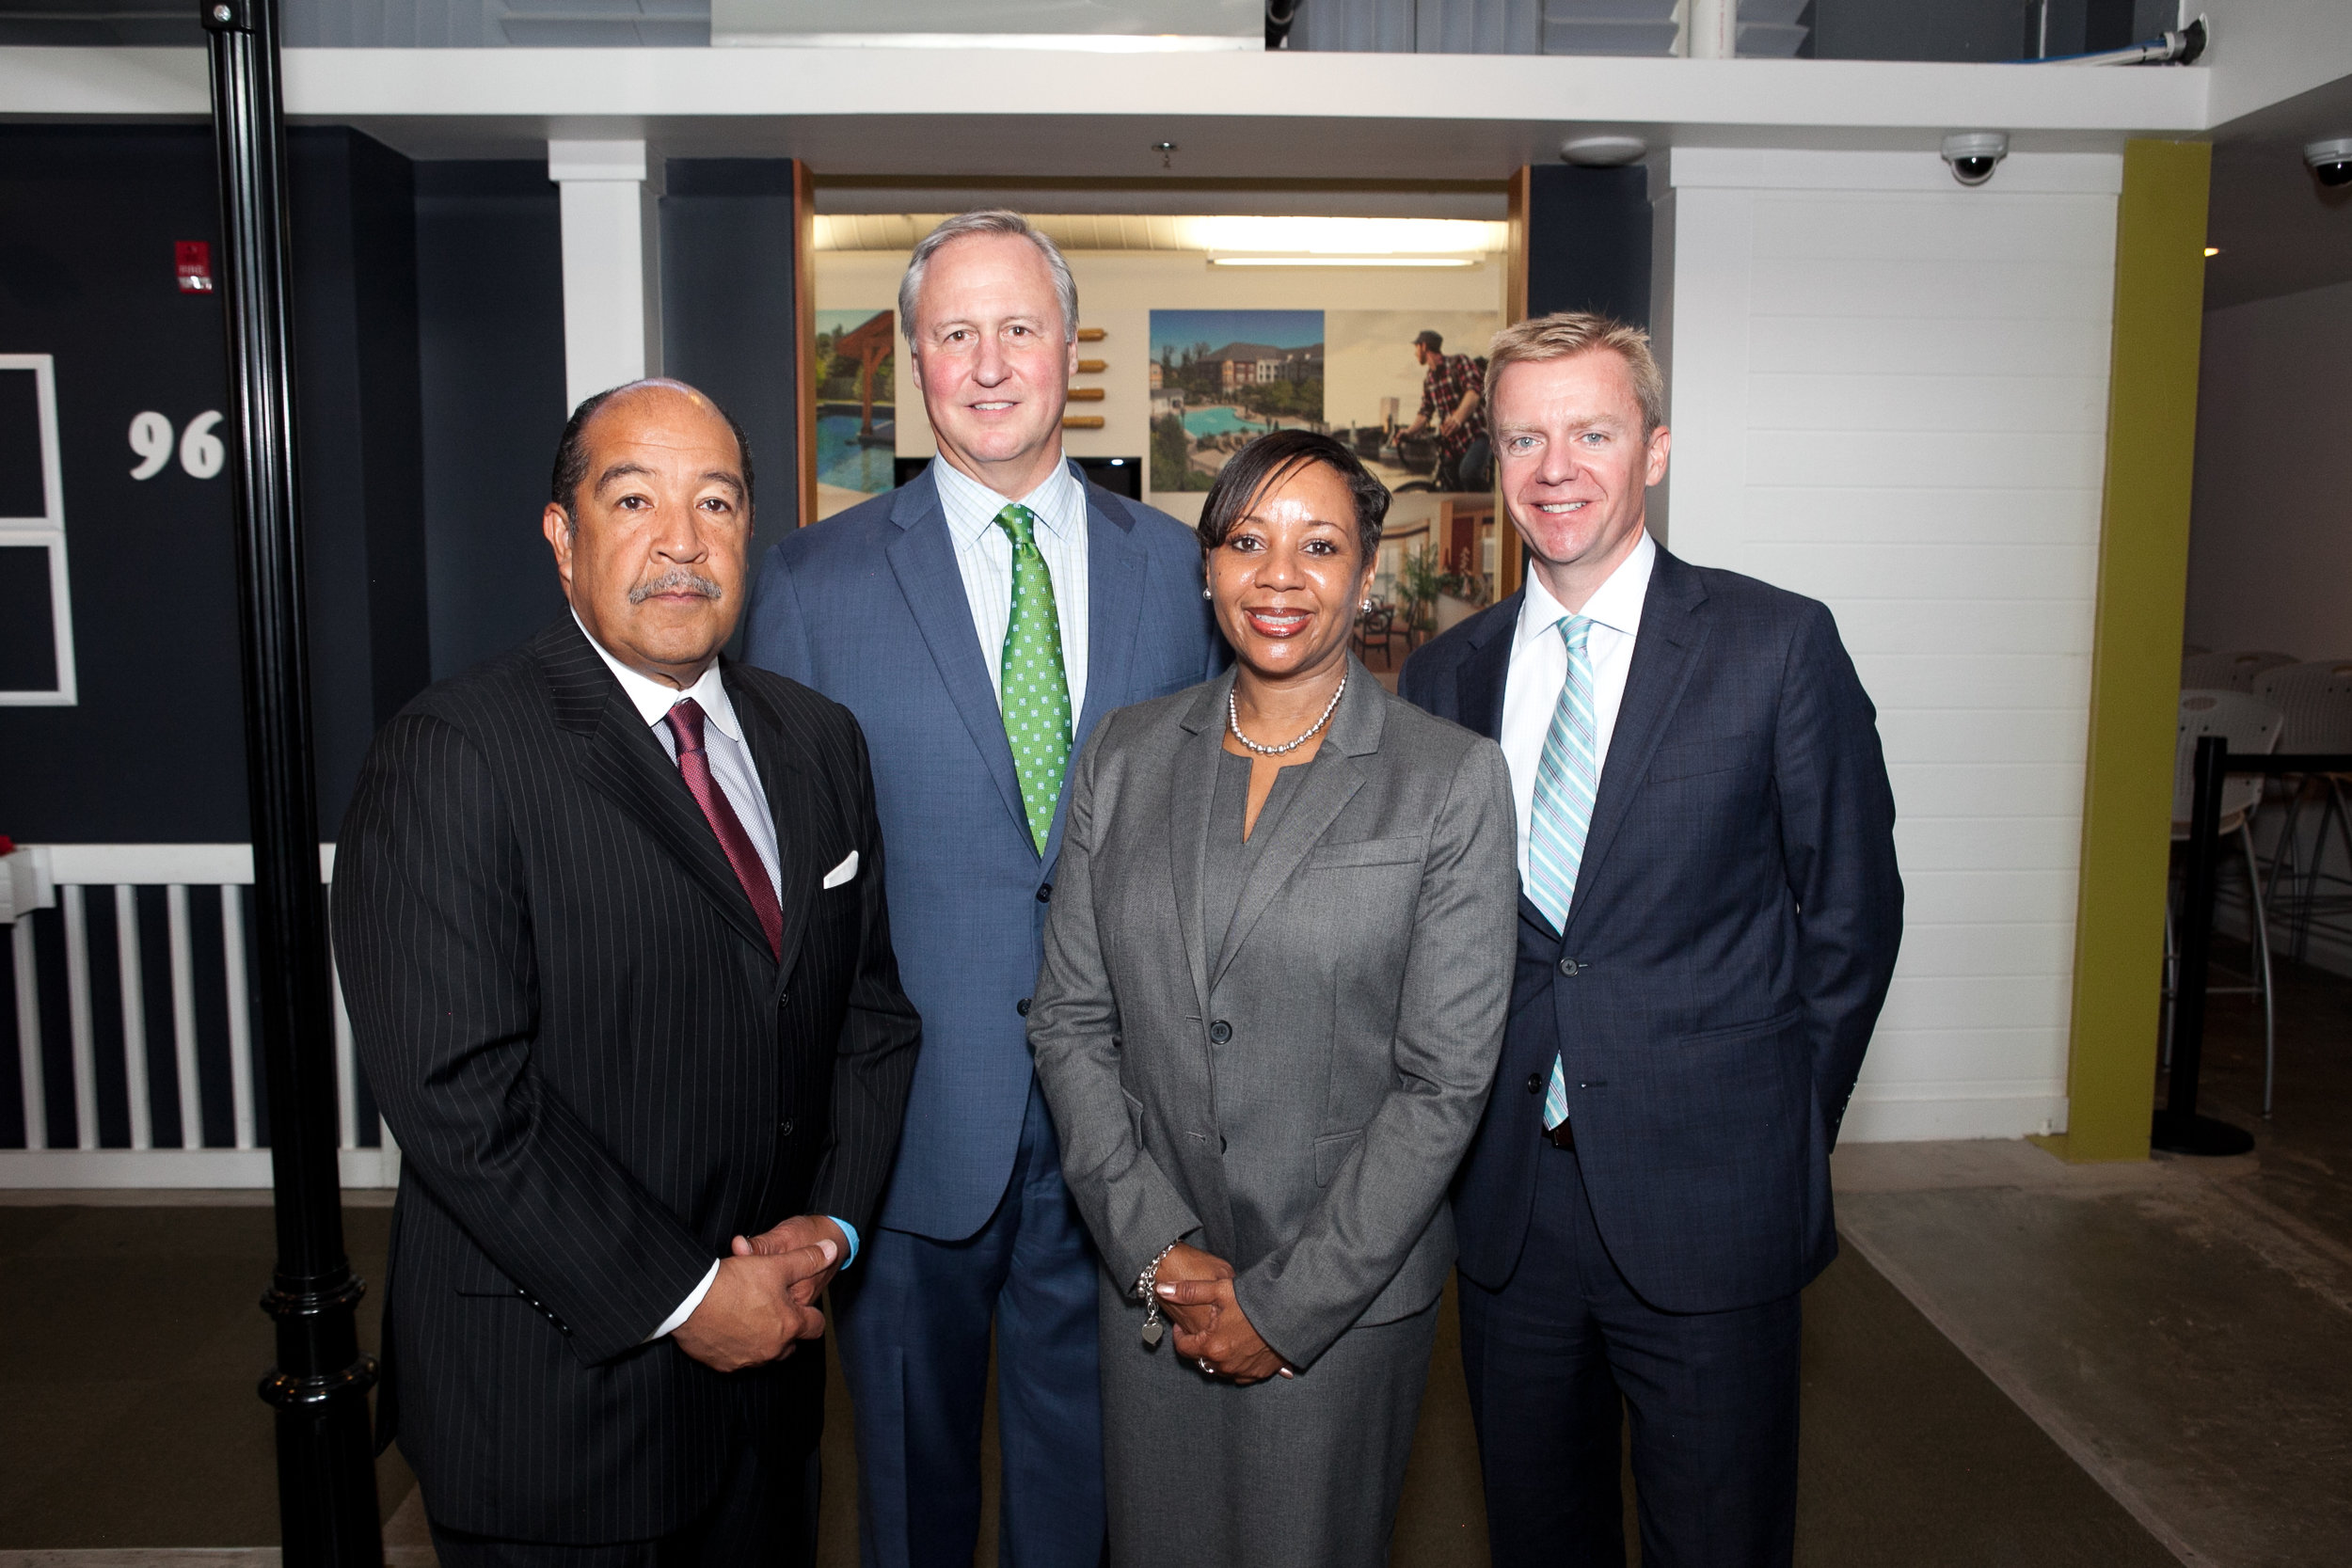 From L to R:  Steve Proctor (President & CEO of G.S. Proctor & Associates, Inc.), Ed Grenier (President and CEO of Junior Achievement of Greater Washington), Dr. Monica E. Goldson (Chief Executive Officer of Prince George's County Public Schools), and Jack Harris (President and Chief Executive Officer of 3DE)